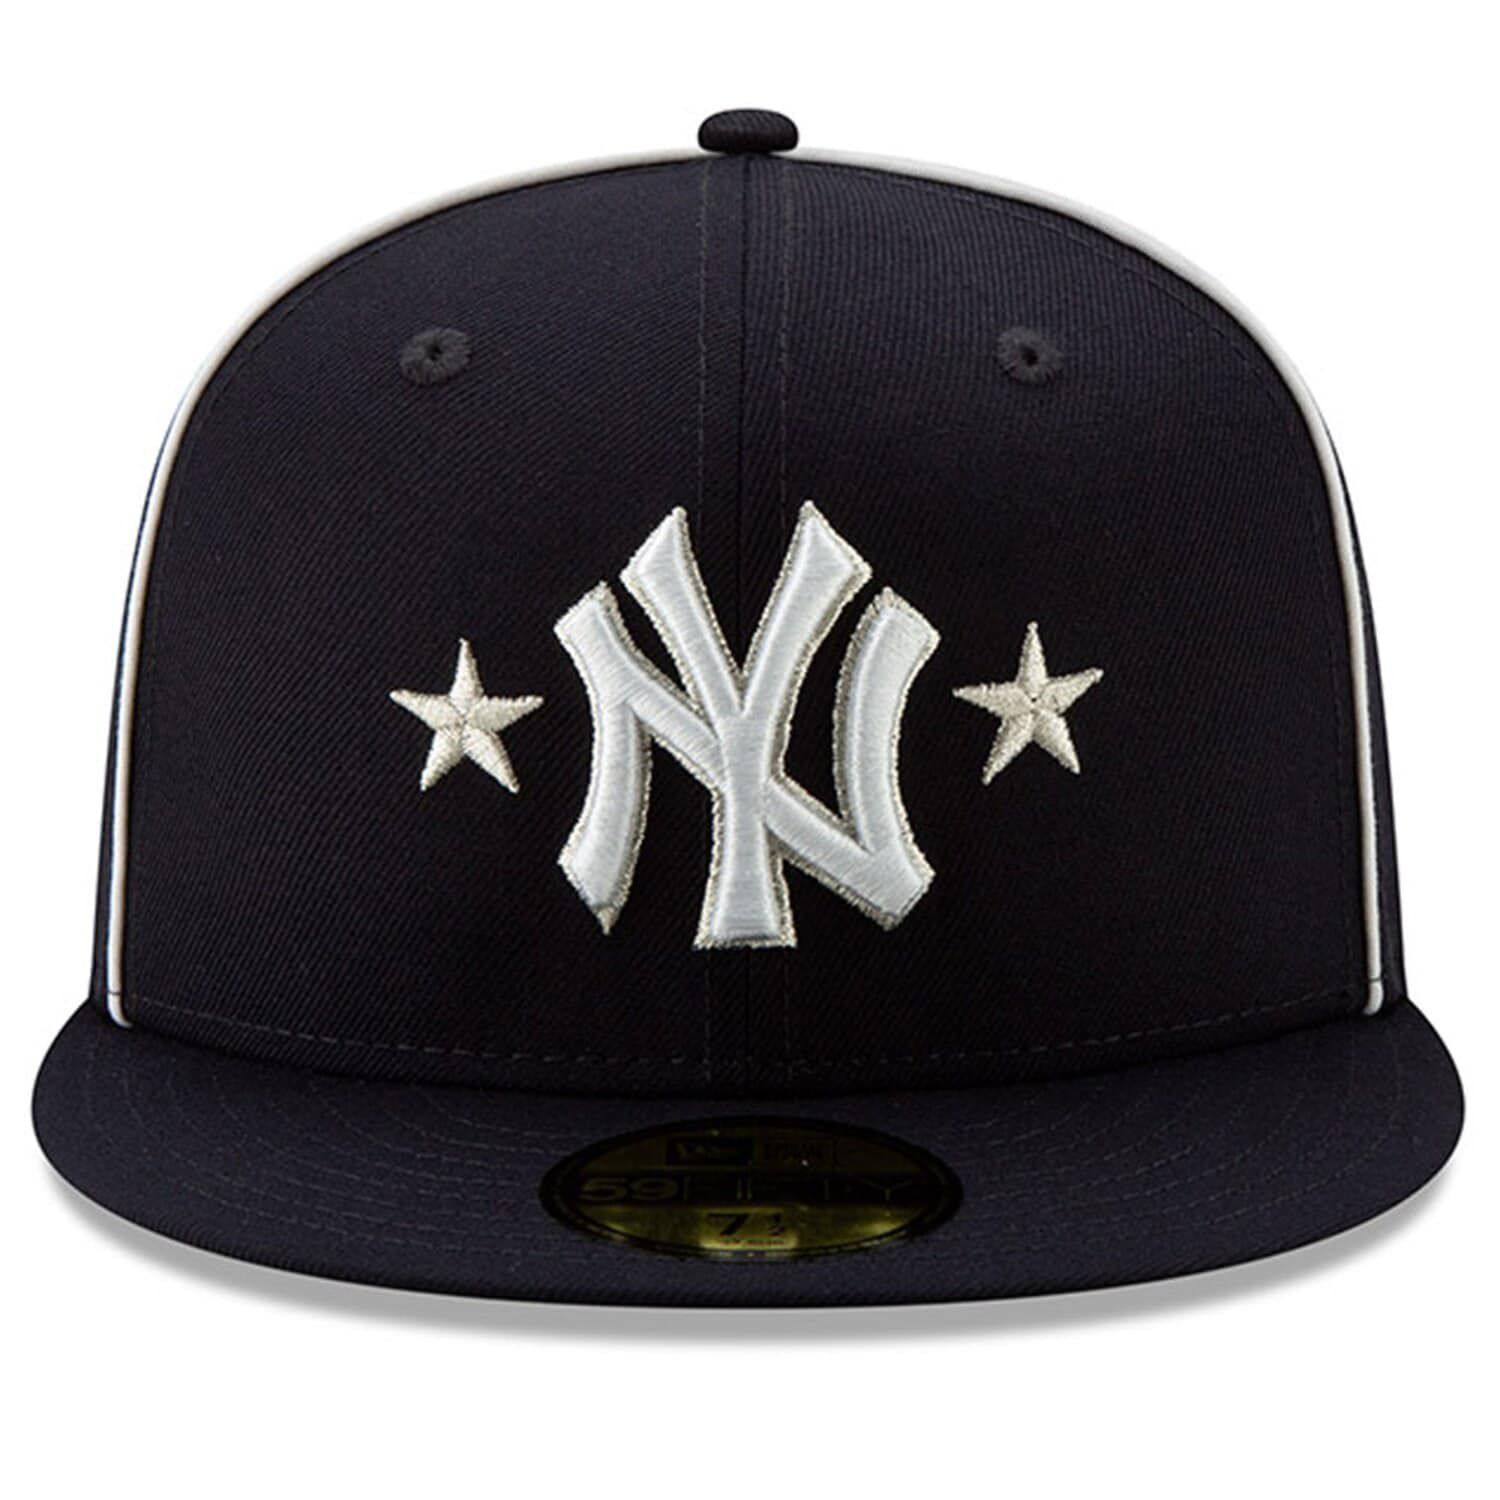 Men S New Era Navy New York Yankees 2019 Mlb All Star Game On Field 59fifty Fitted Hat Fitted Hats New York Yankees New Era